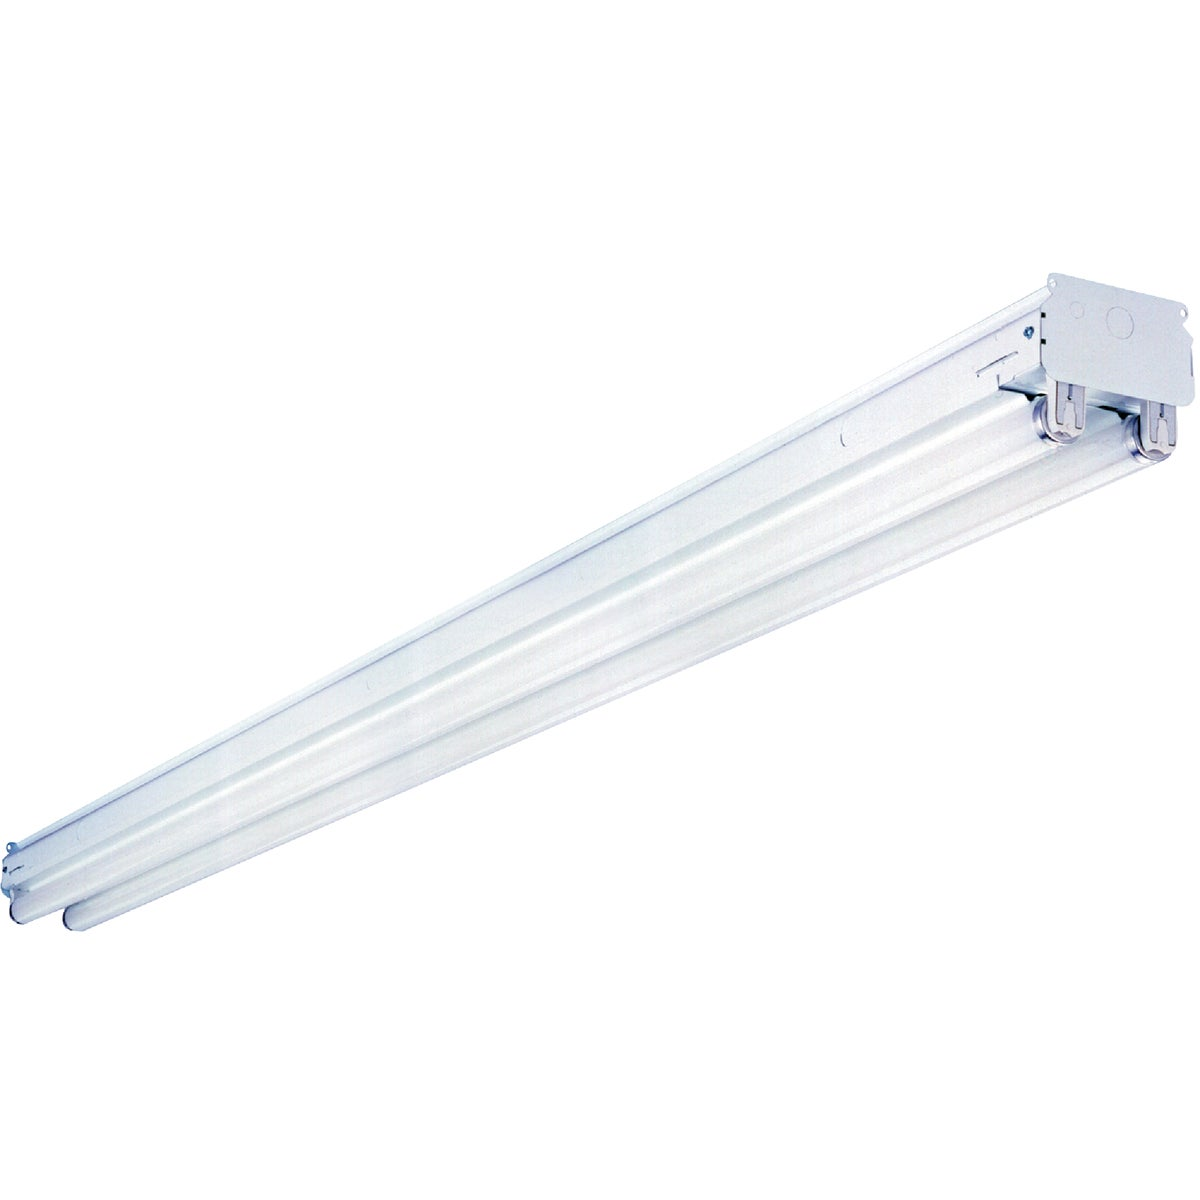 8' T12 2BULB HO STRIP - UNS296H0120CW20GEB by Lithonia Lighting